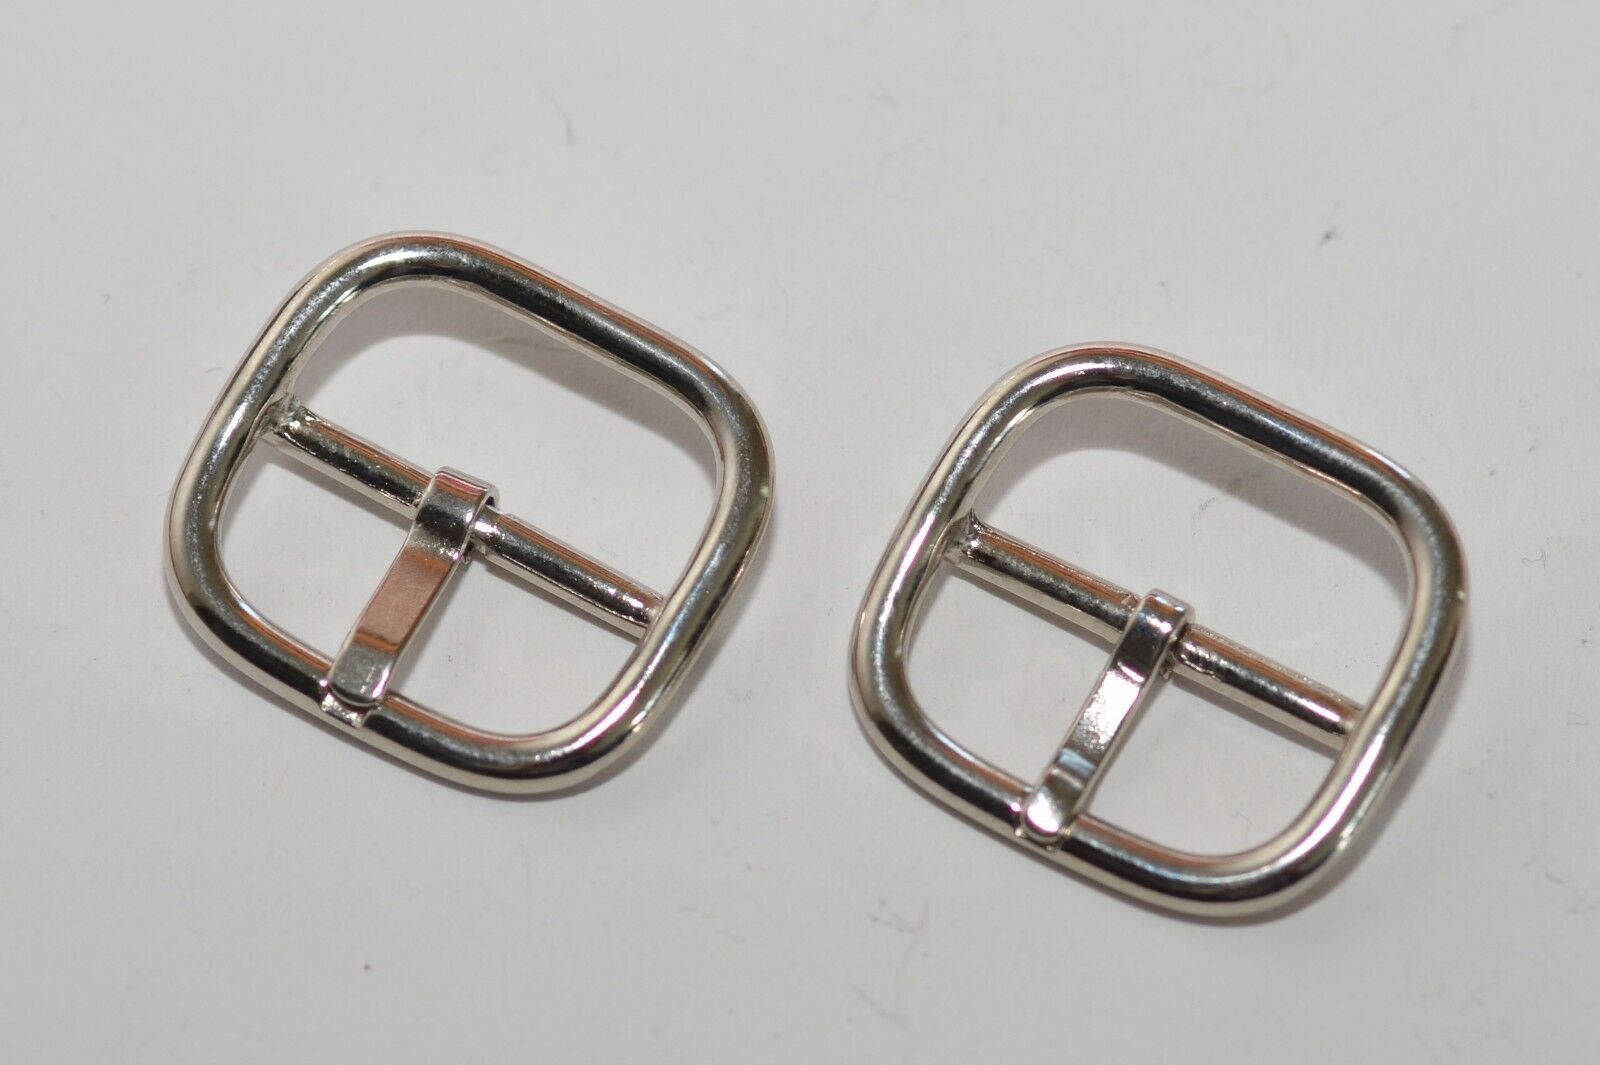 4x Belt Buckle Clasp For Approx. 25 MM Width, Silver, without Rust